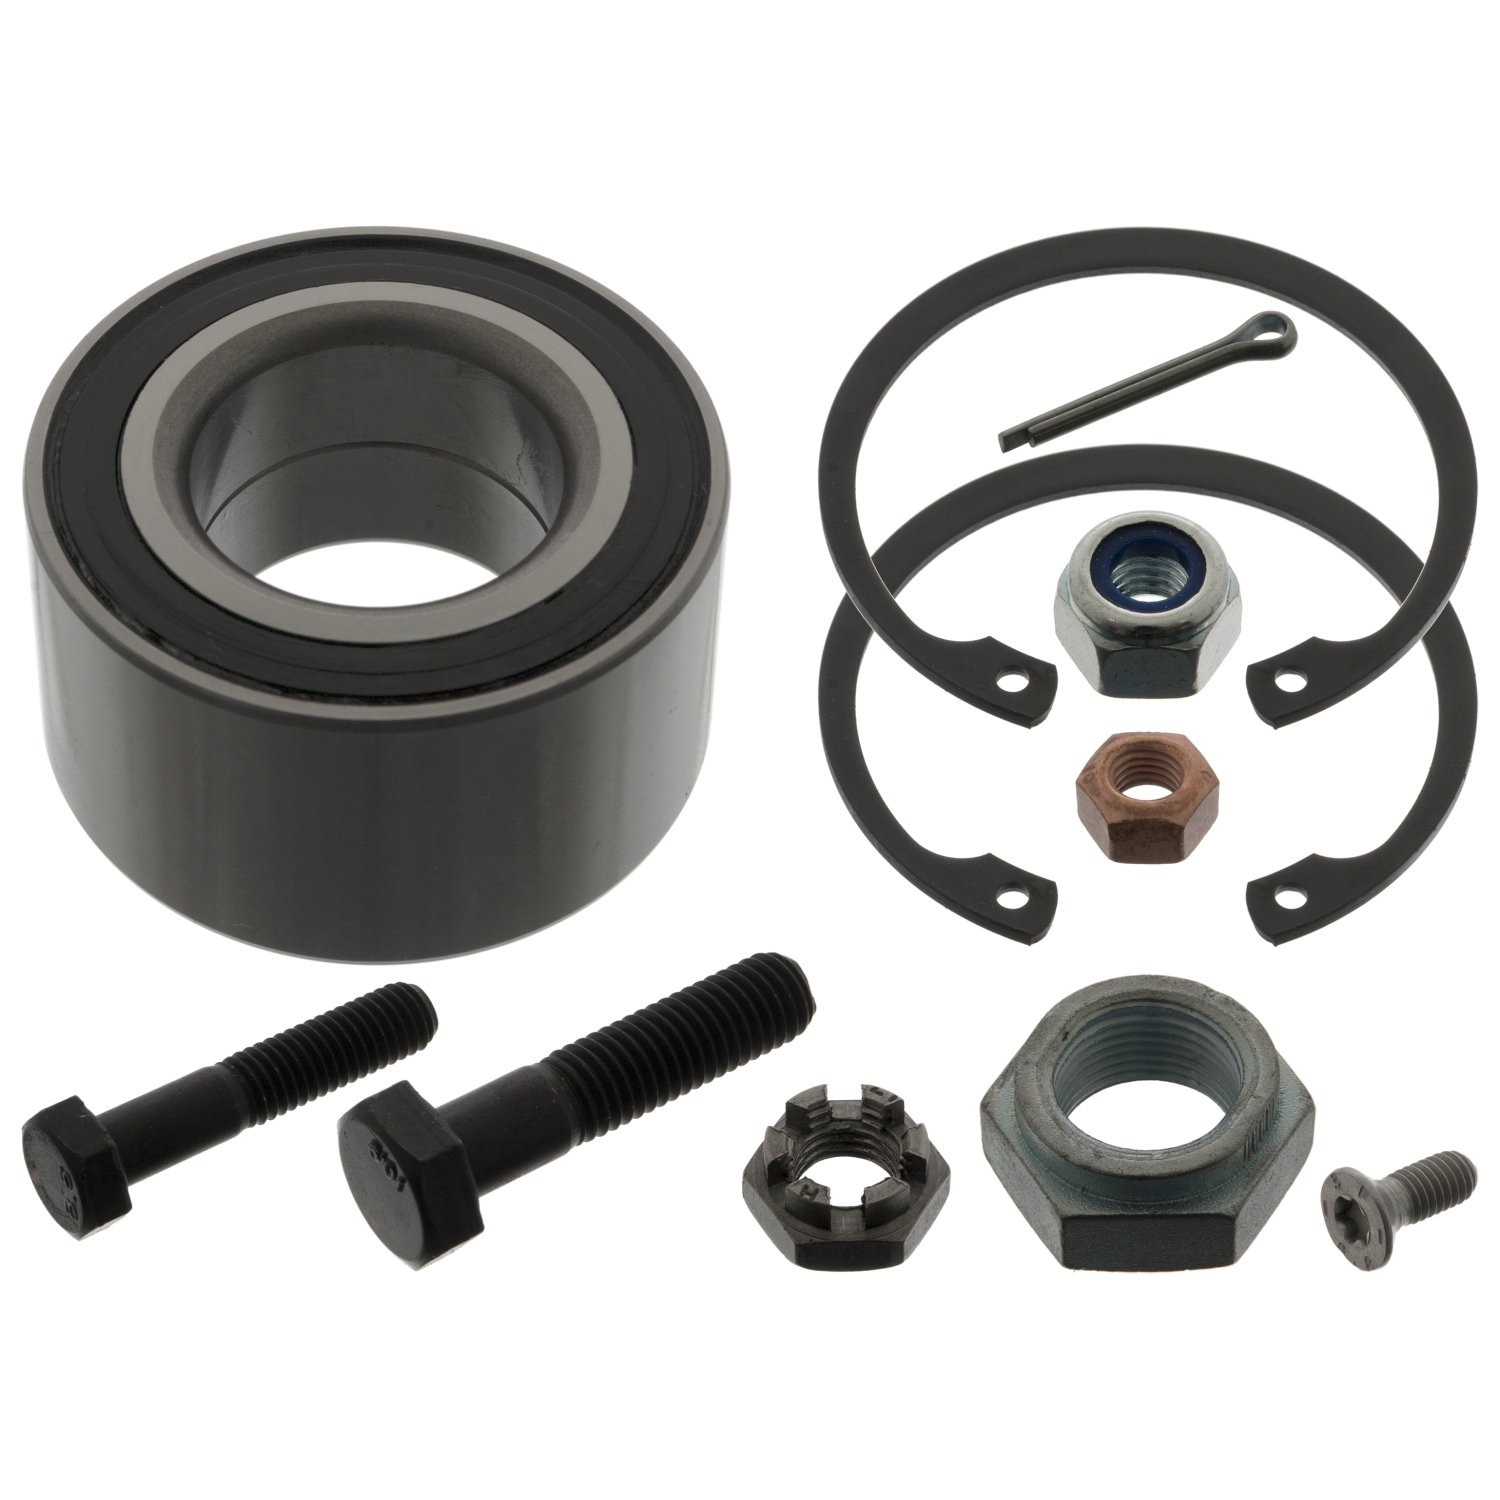 febi bilstein 03488 Wheel Bearing Kit with additional parts pack of one